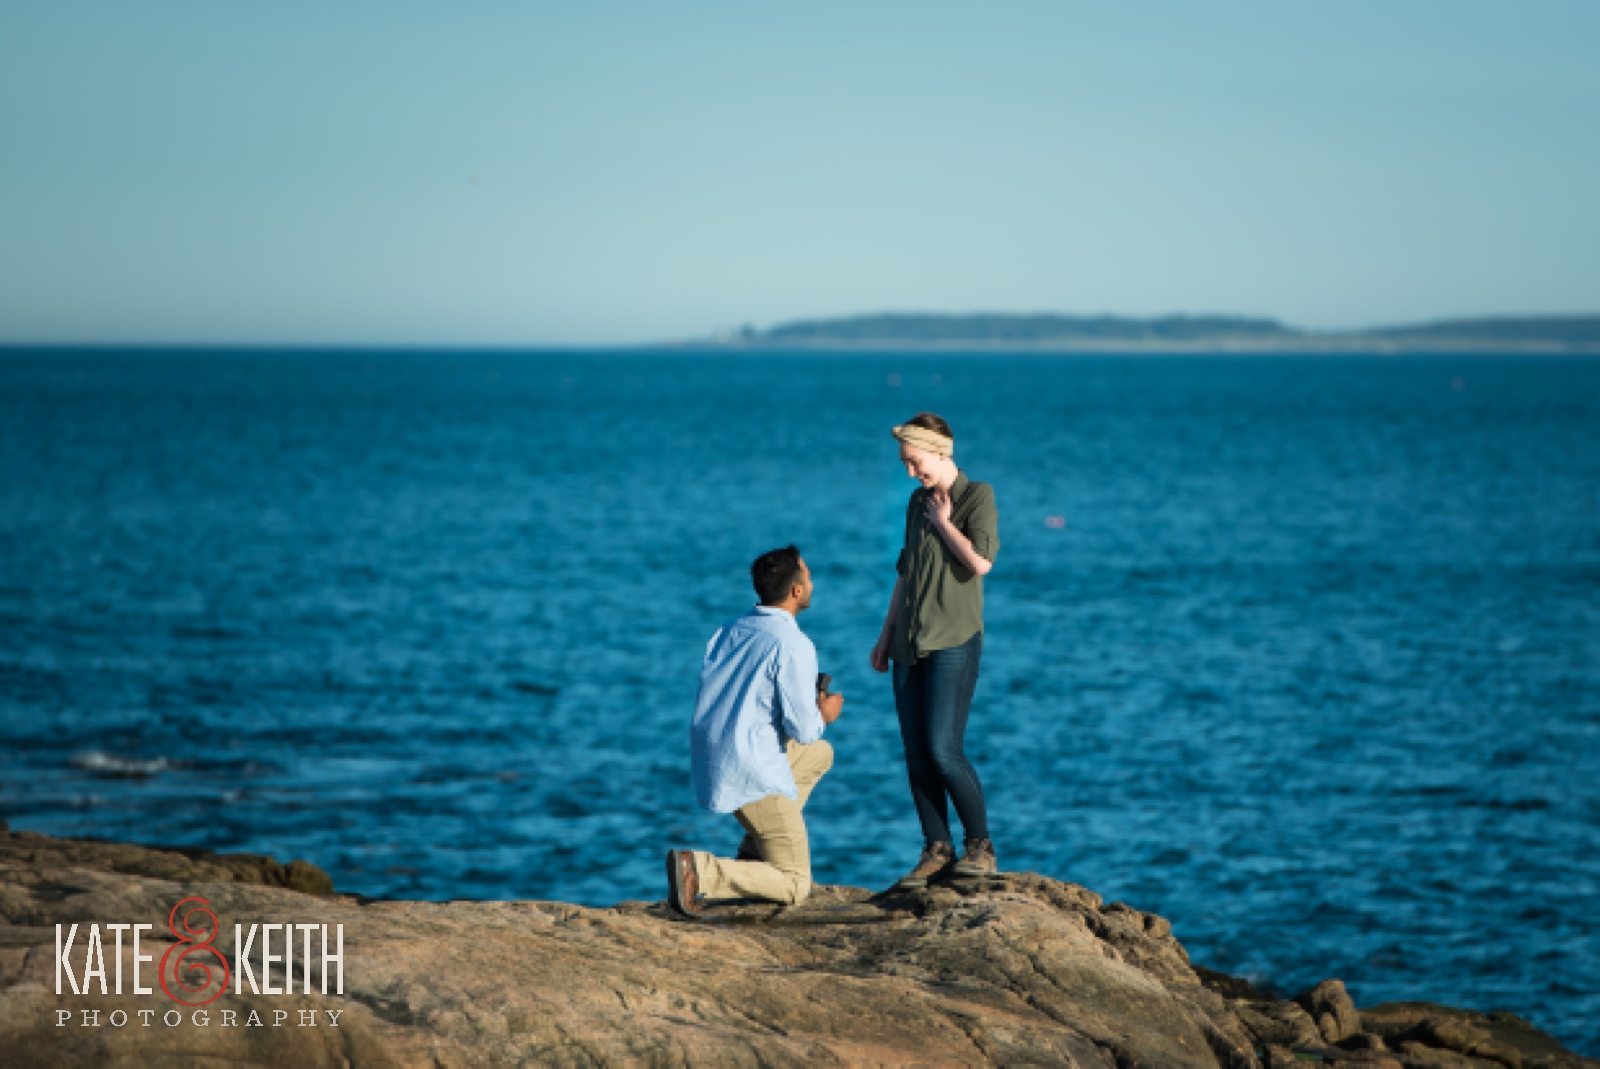 Man proposing to woman in Acadia National Park, engagement, water, ocean, sea, seaside, surprise proposal, surprise wedding proposal, rocky coast, Maine, sunset